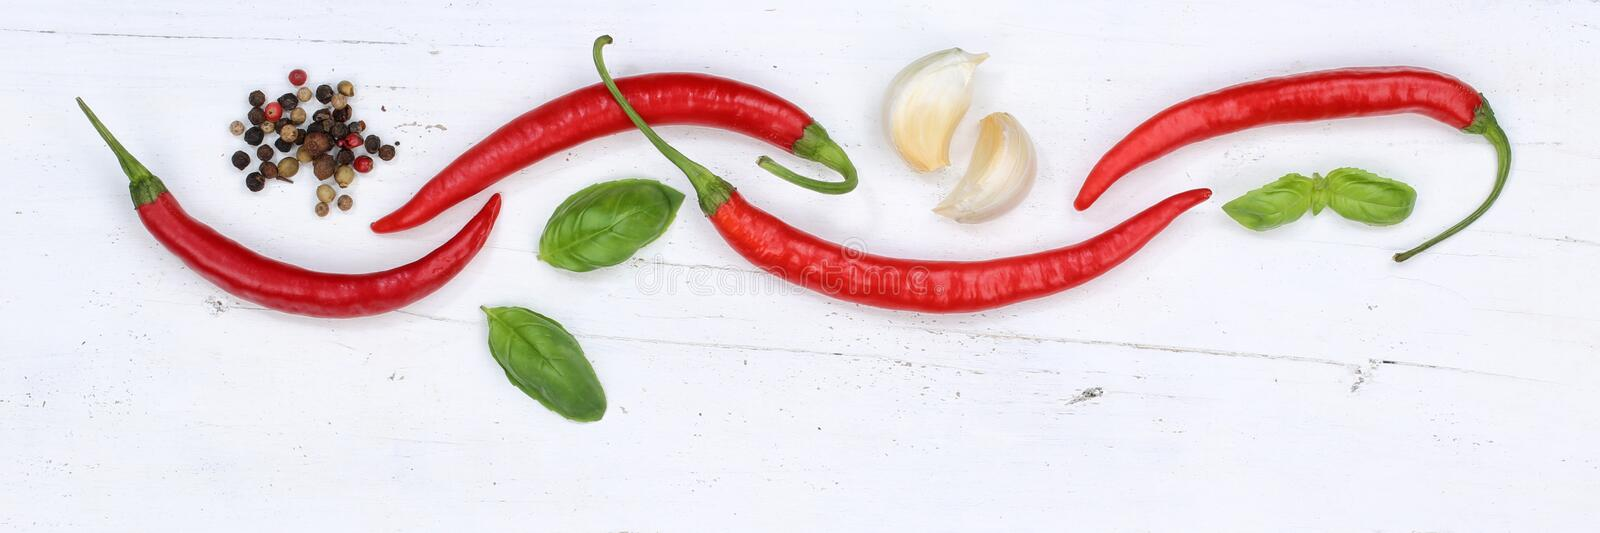 Red hot chili peppers chilli cooking ingredients banner copyspace background top view royalty free stock photos